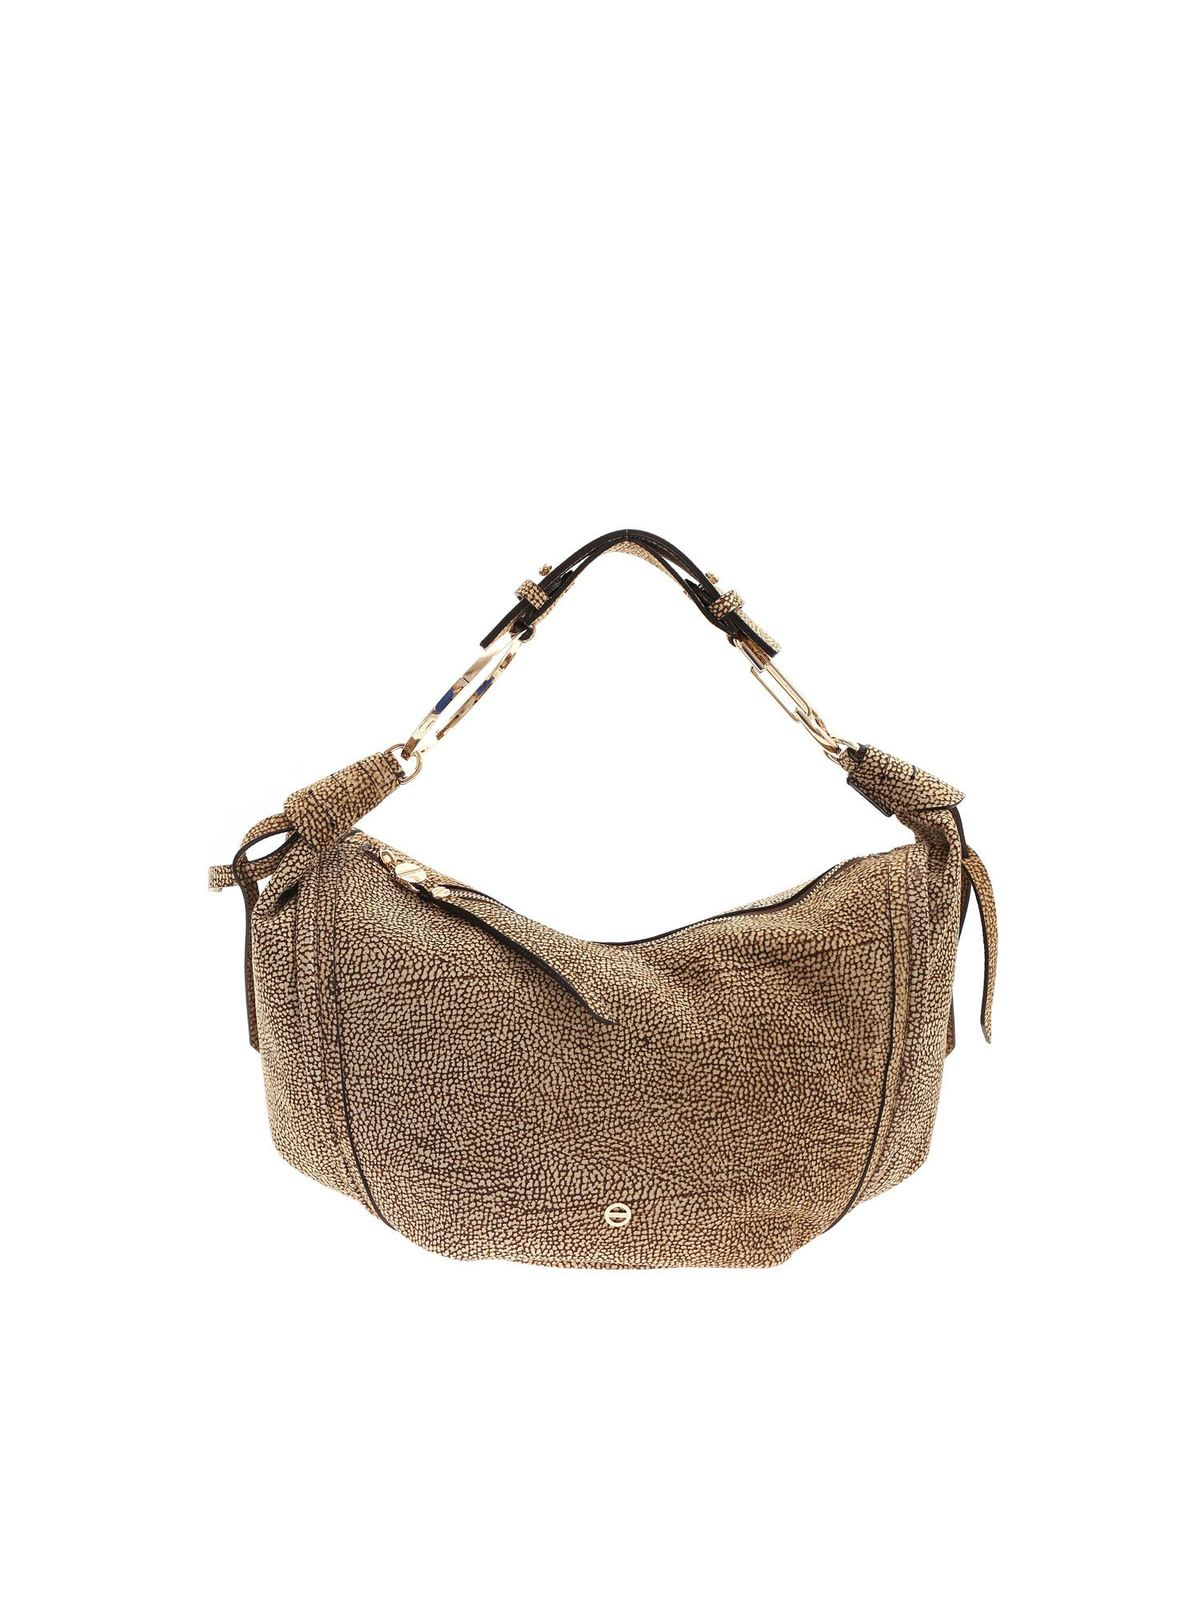 Borbonese OP PRINT SHOULDER BAG IN BROWN AND BEIGE